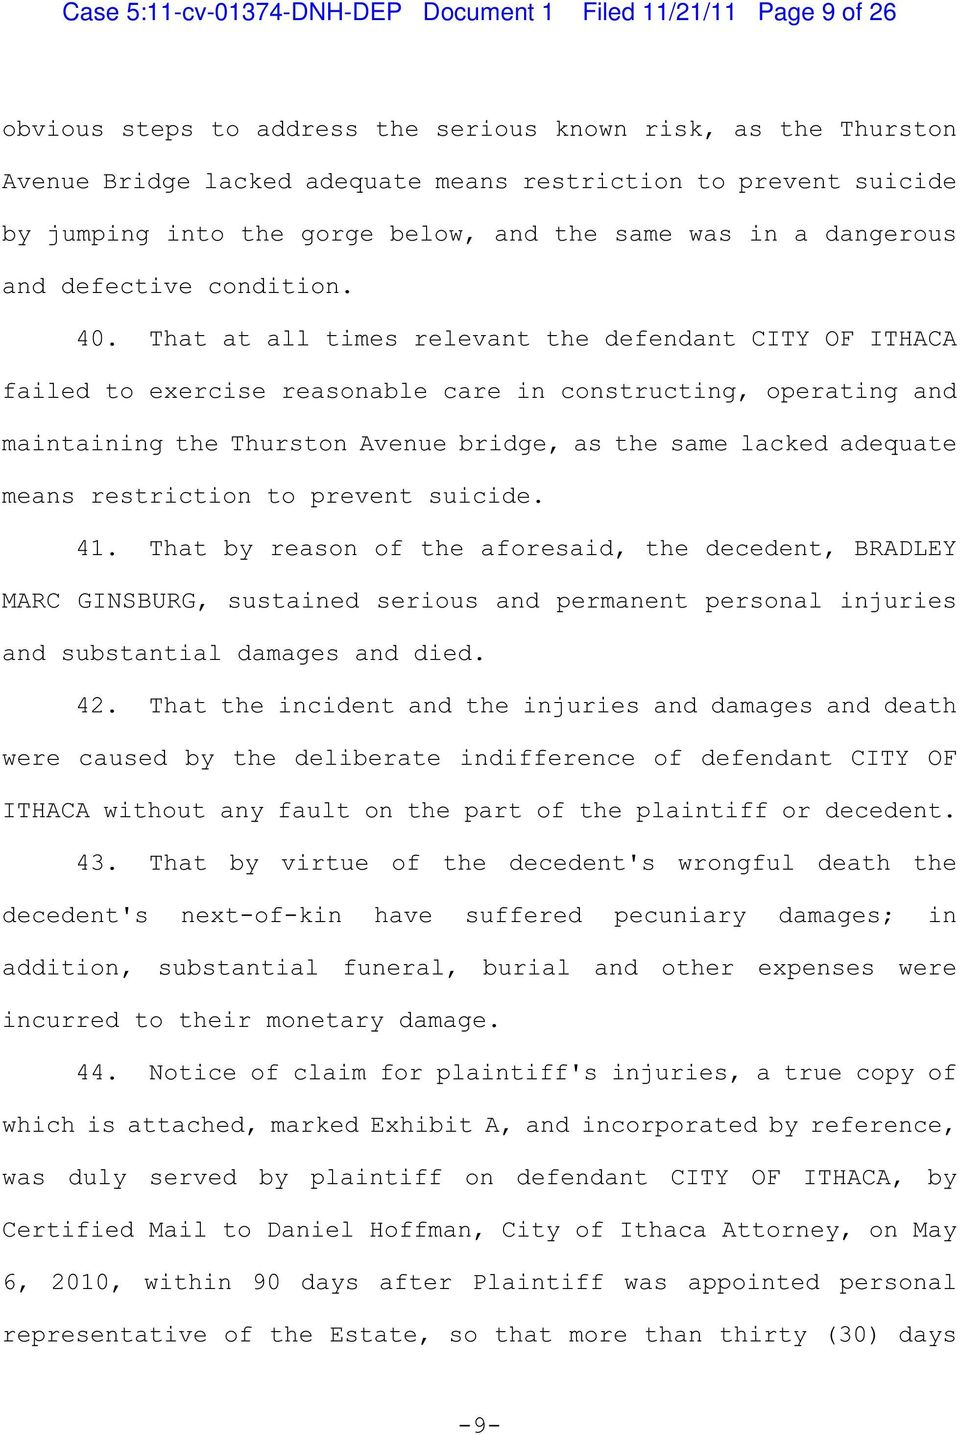 That at all times relevant the defendant CITY OF ITHACA failed to exercise reasonable care in constructing, operating and maintaining the Thurston Avenue bridge, as the same lacked adequate means